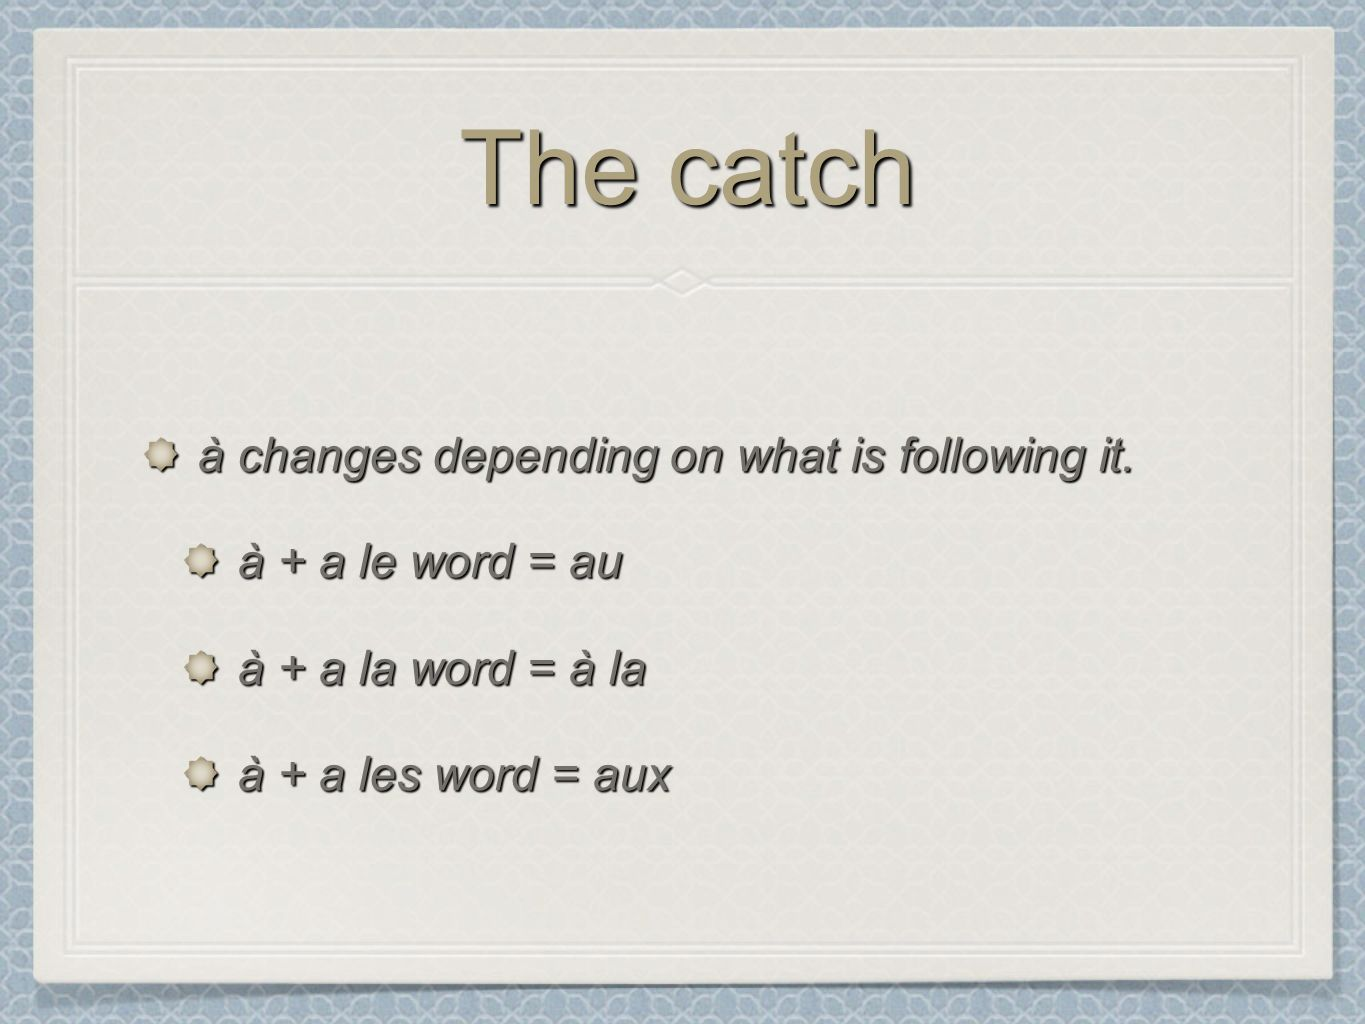 The catch à changes depending on what is following it.